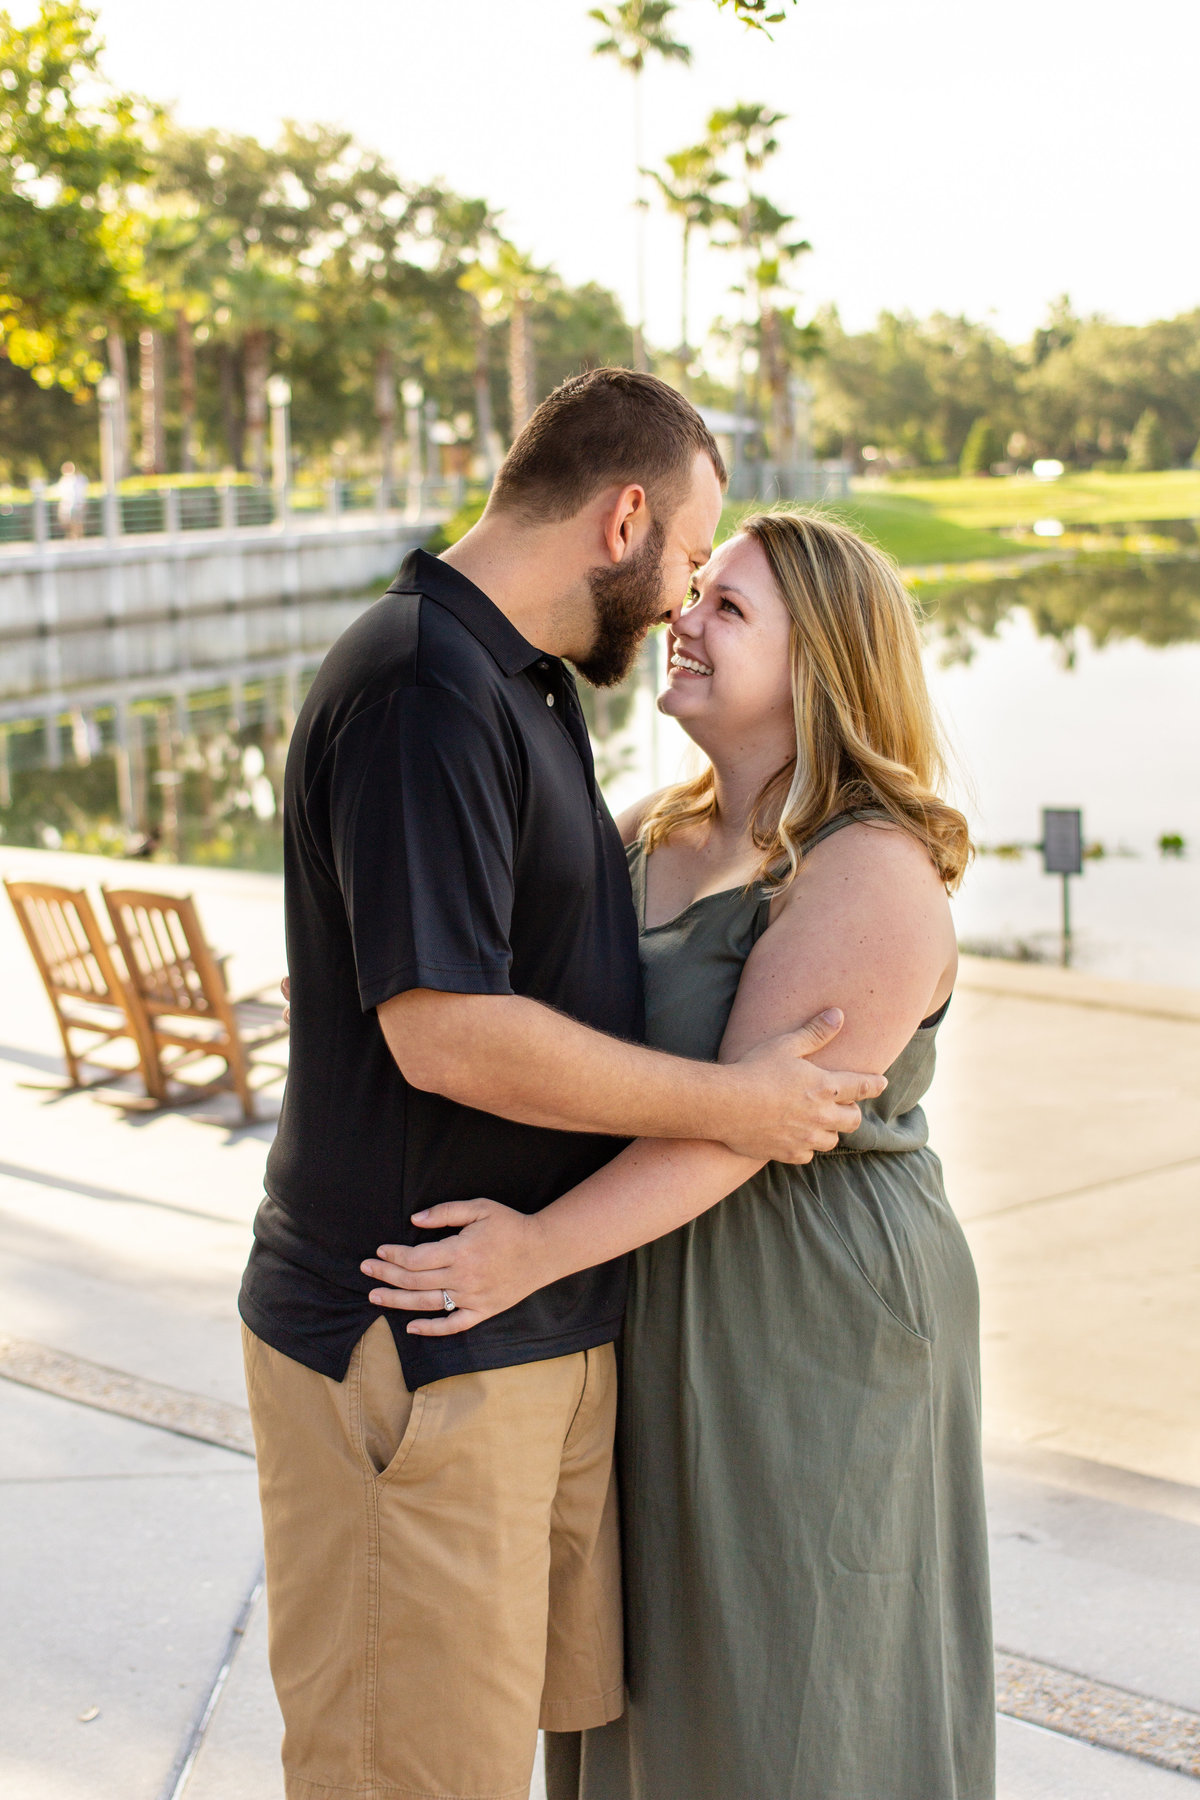 Couple smiles at each other during their sunrise engagement photo session in Celebration, Florida